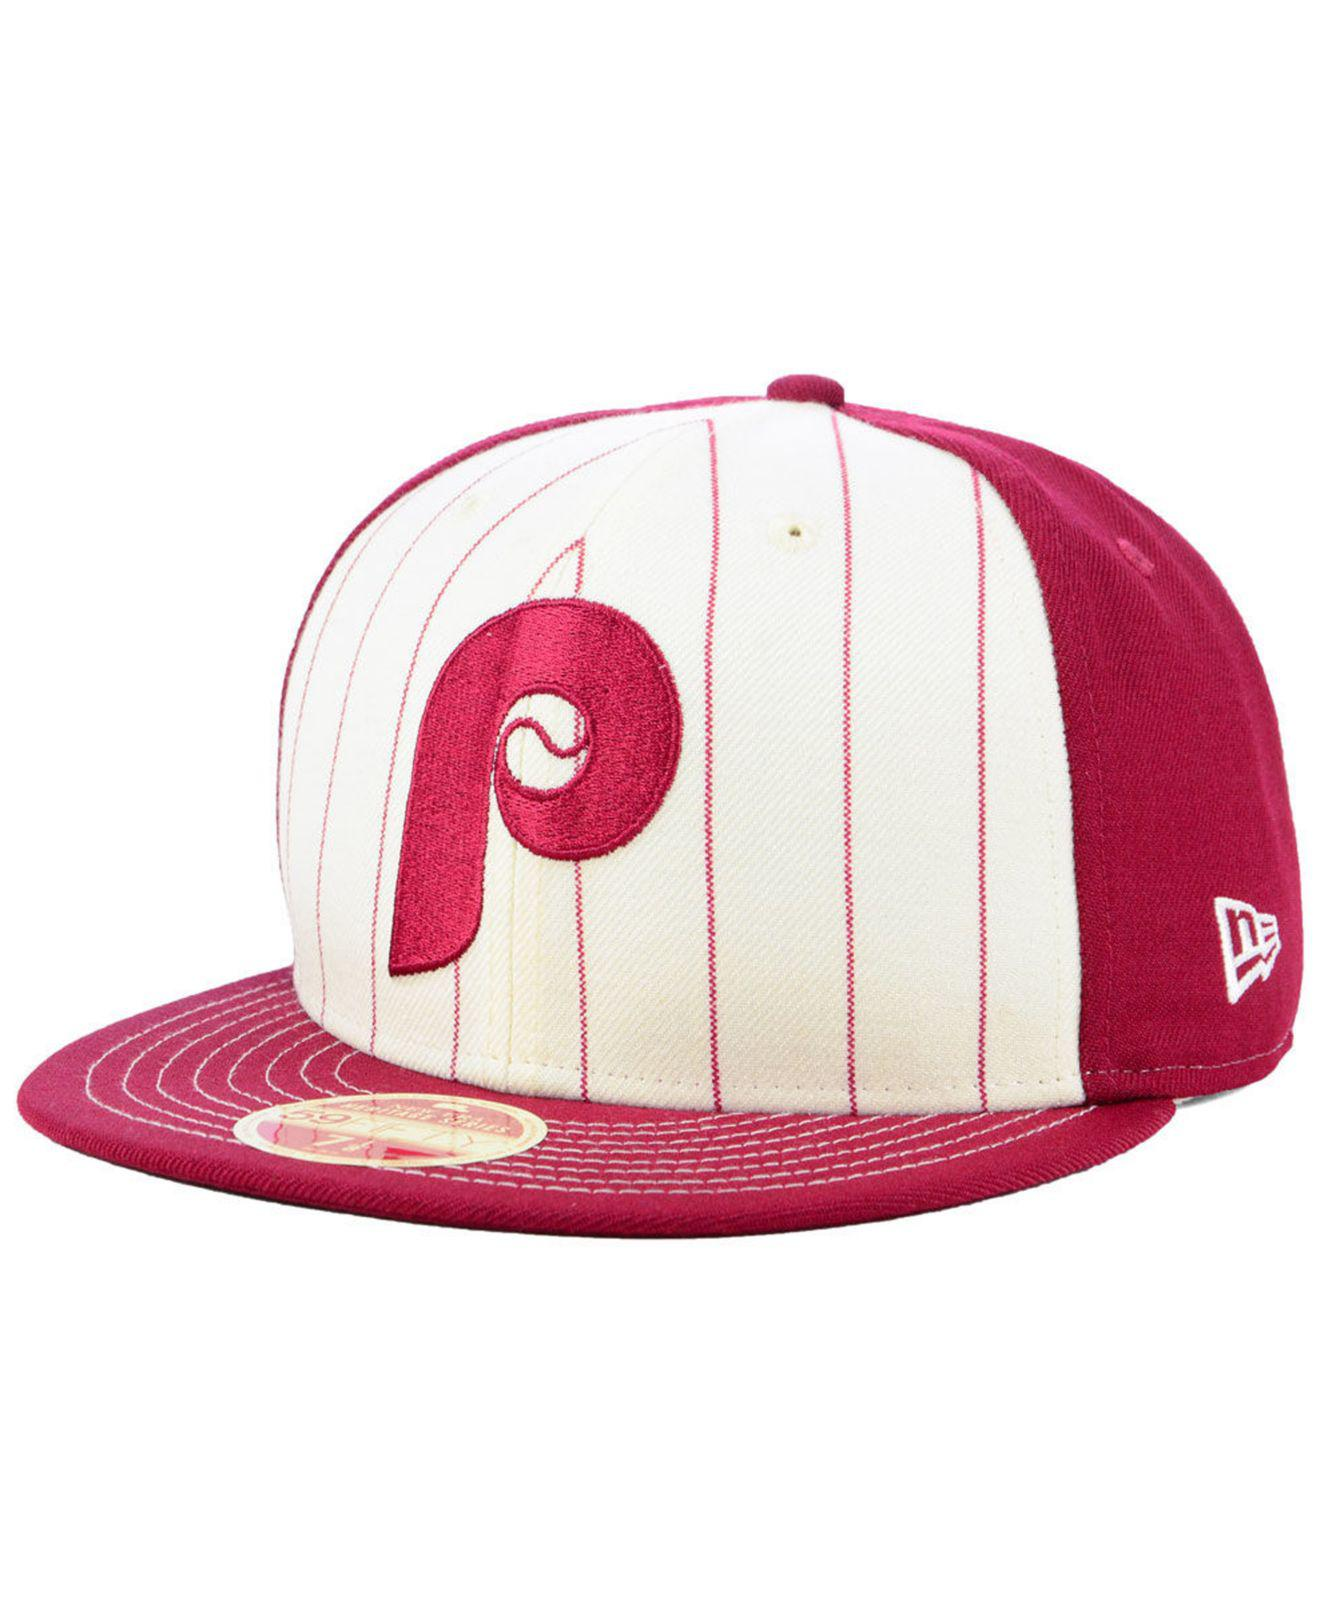 8c585caeb11 Lyst - Ktz Philadelphia Phillies Vintage Front 59fifty Fitted Cap ...